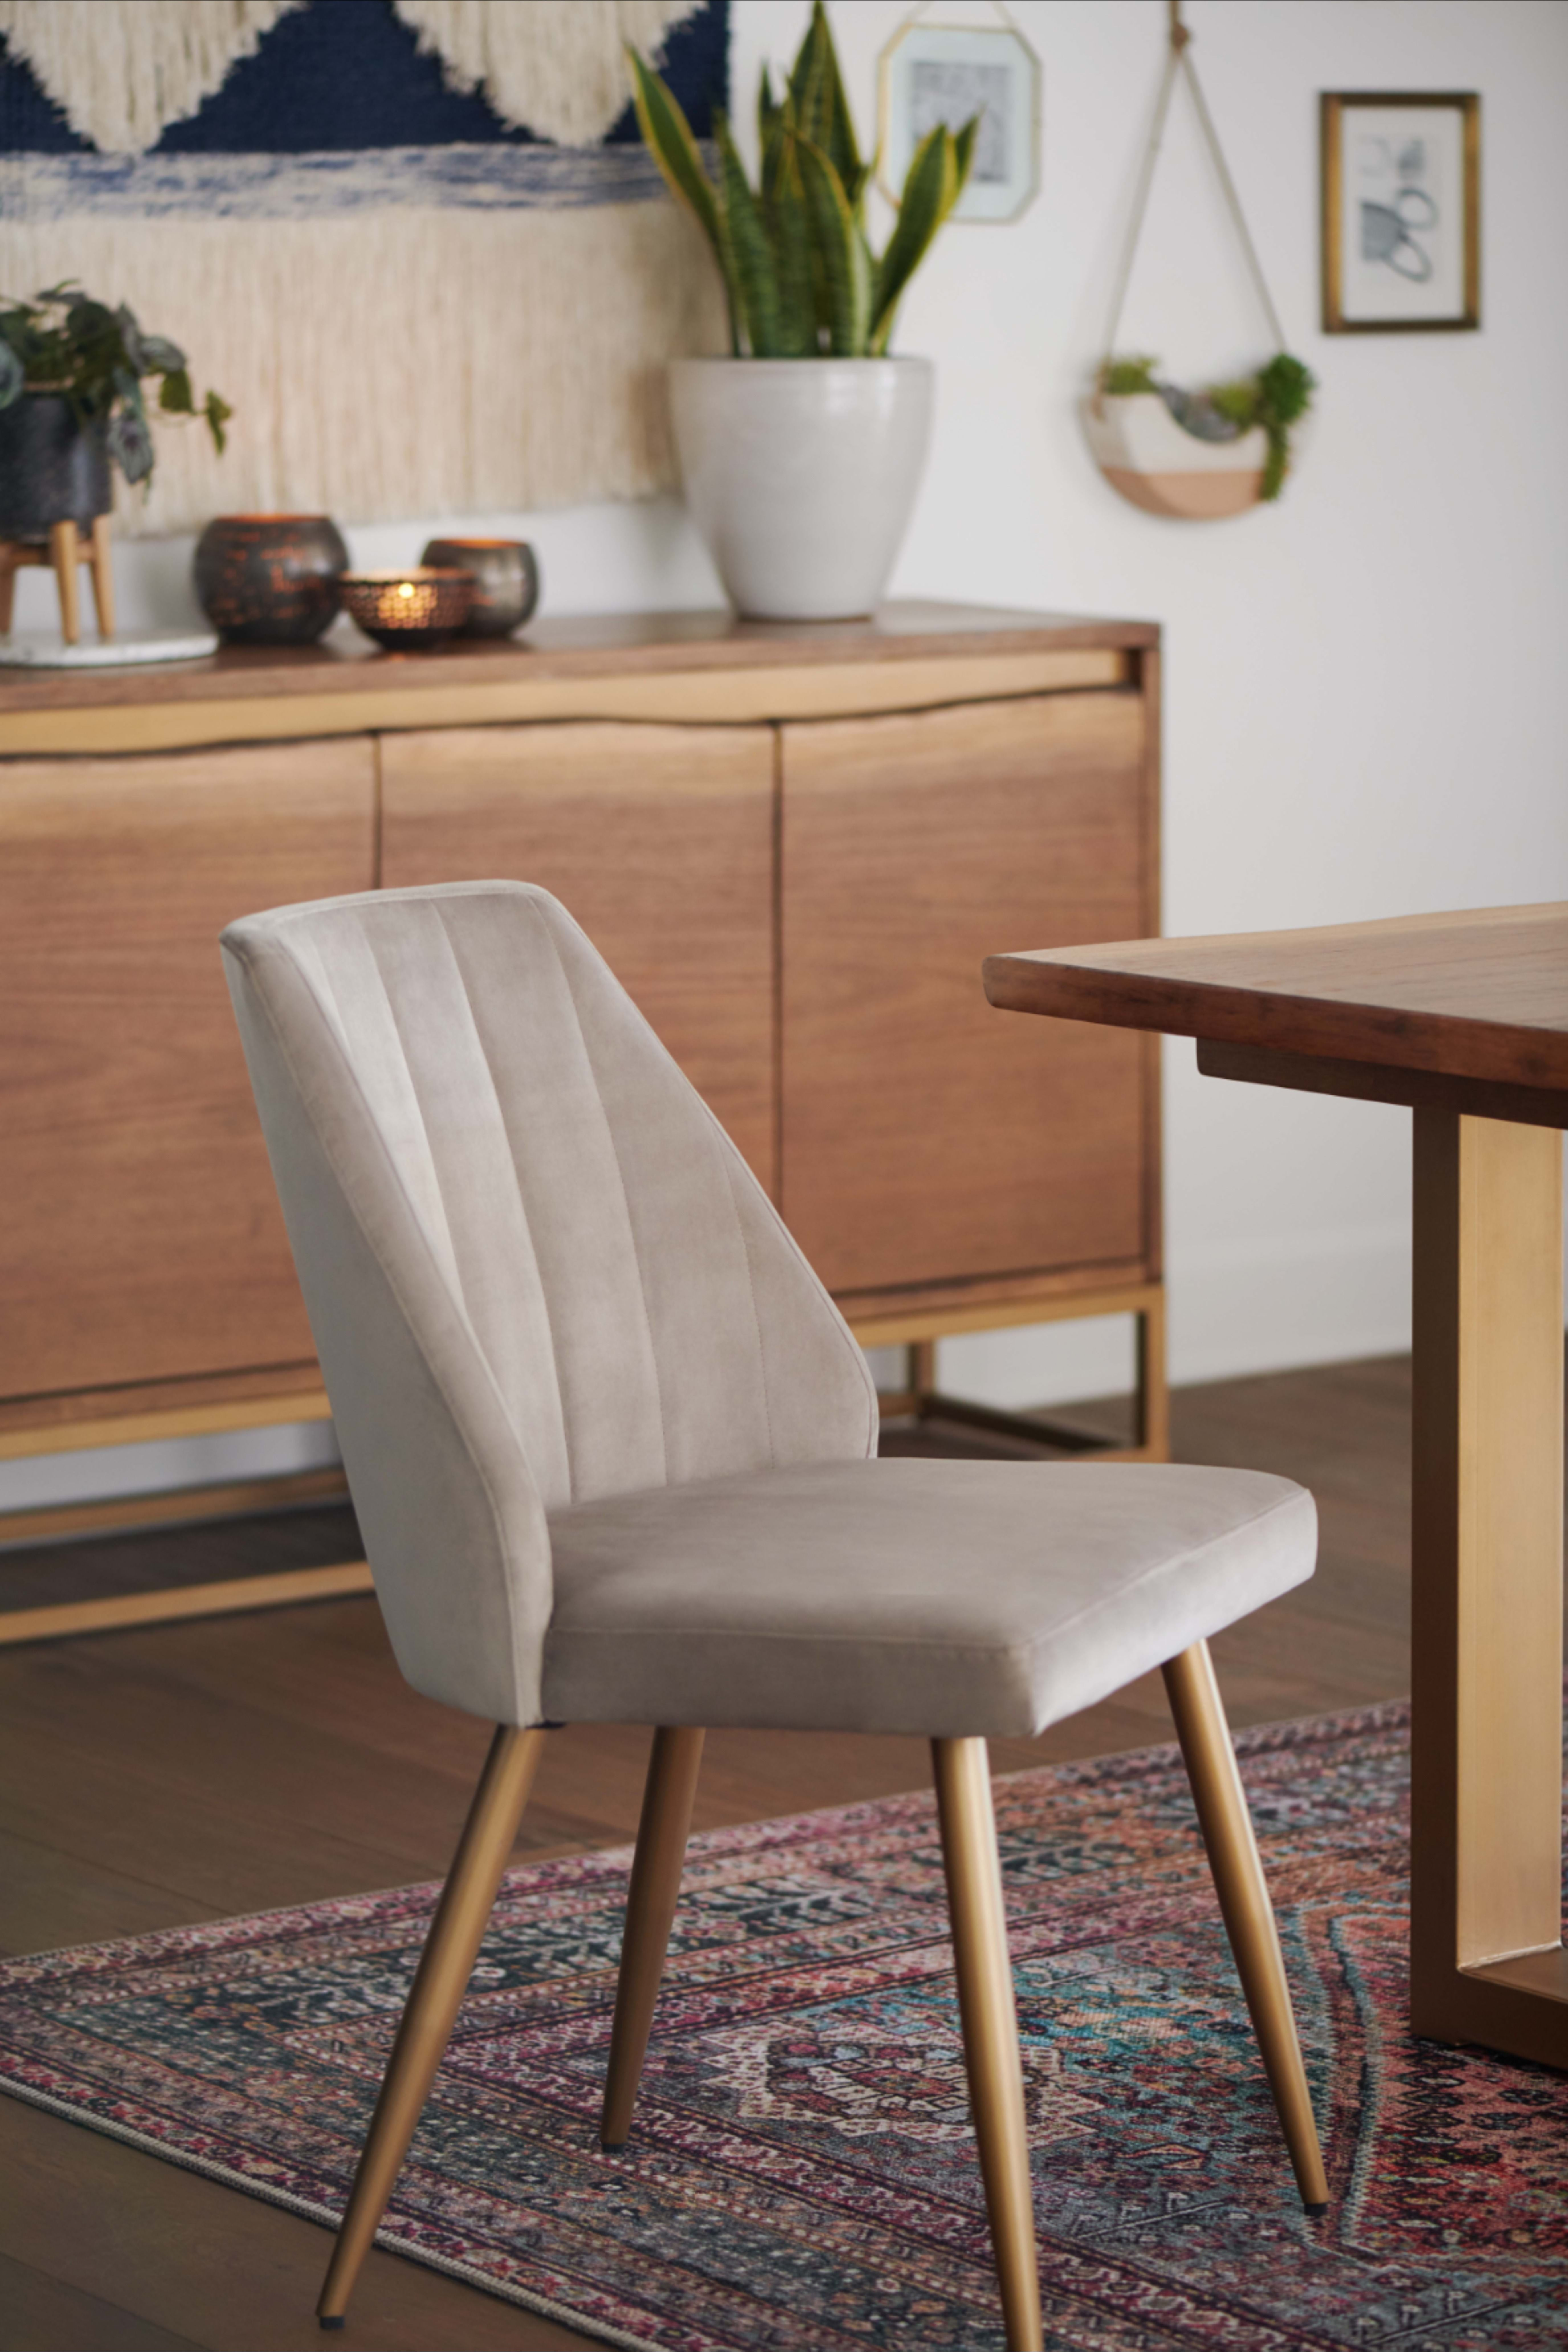 Channel Back Leilani Dining Chairs Dining Room Furniture Sets Eclectic Dining Room Furniture Dining Chairs